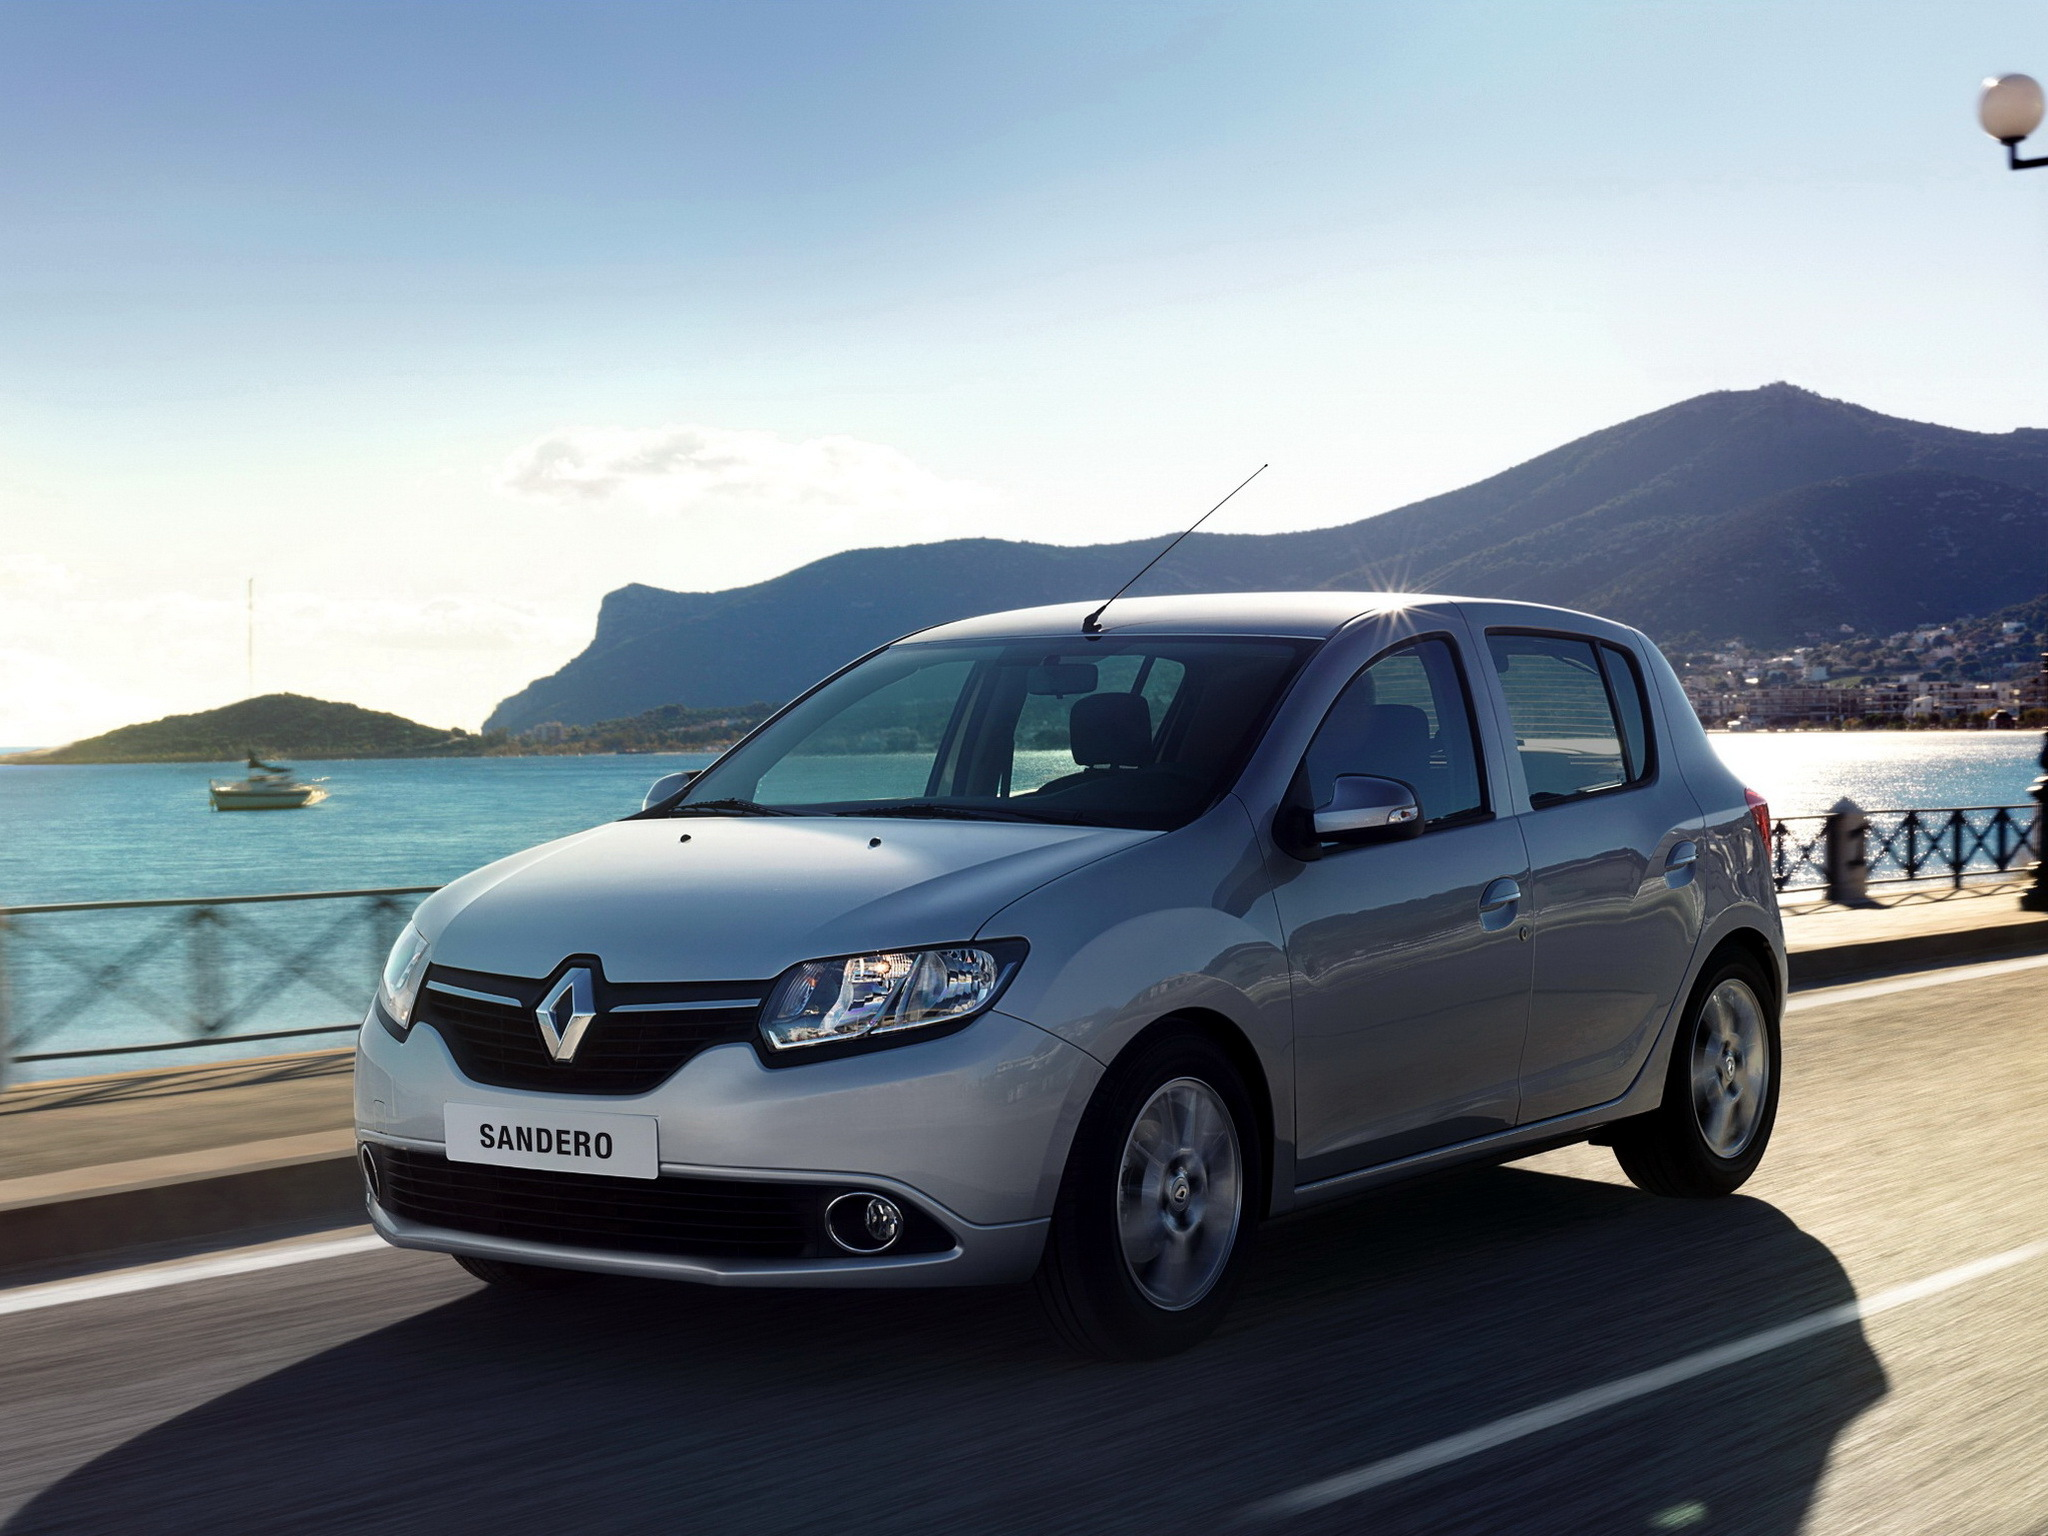 Auto___Renault_Reliable_car_Renault_Sandero__062099_